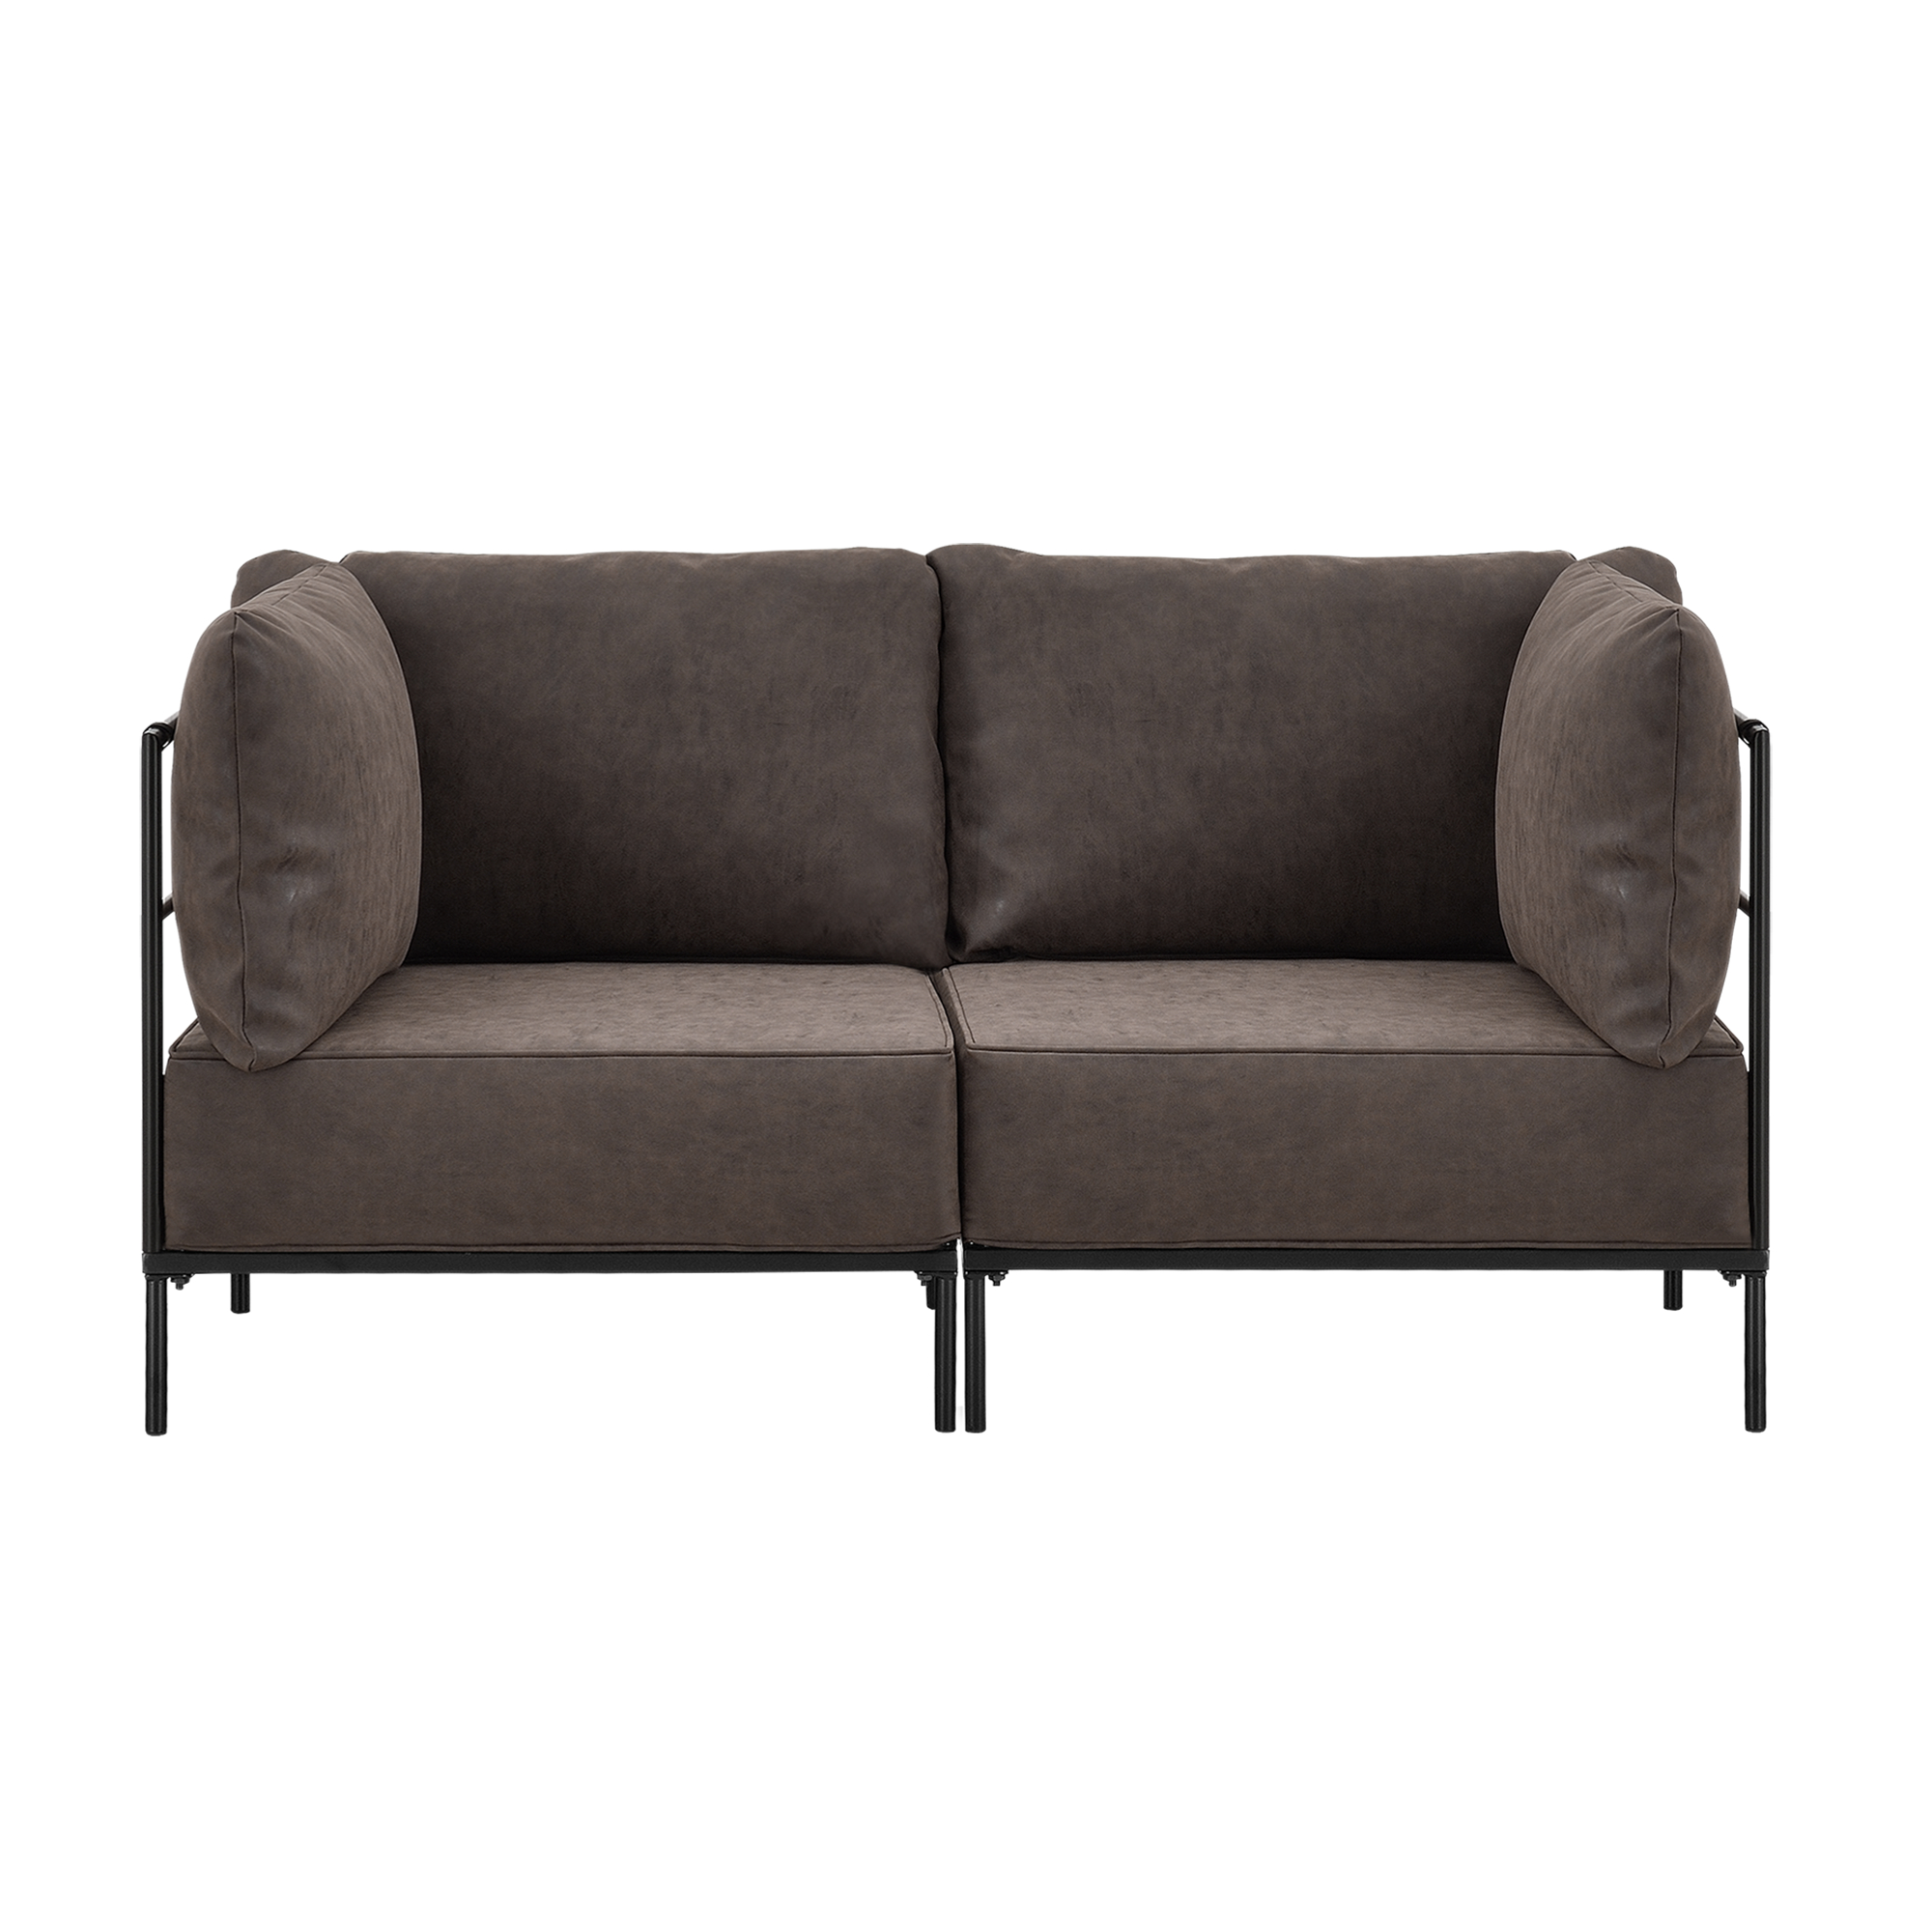 sofa couch chair sofa interior design 3 2 1 set brown 4059438112300 ebay. Black Bedroom Furniture Sets. Home Design Ideas